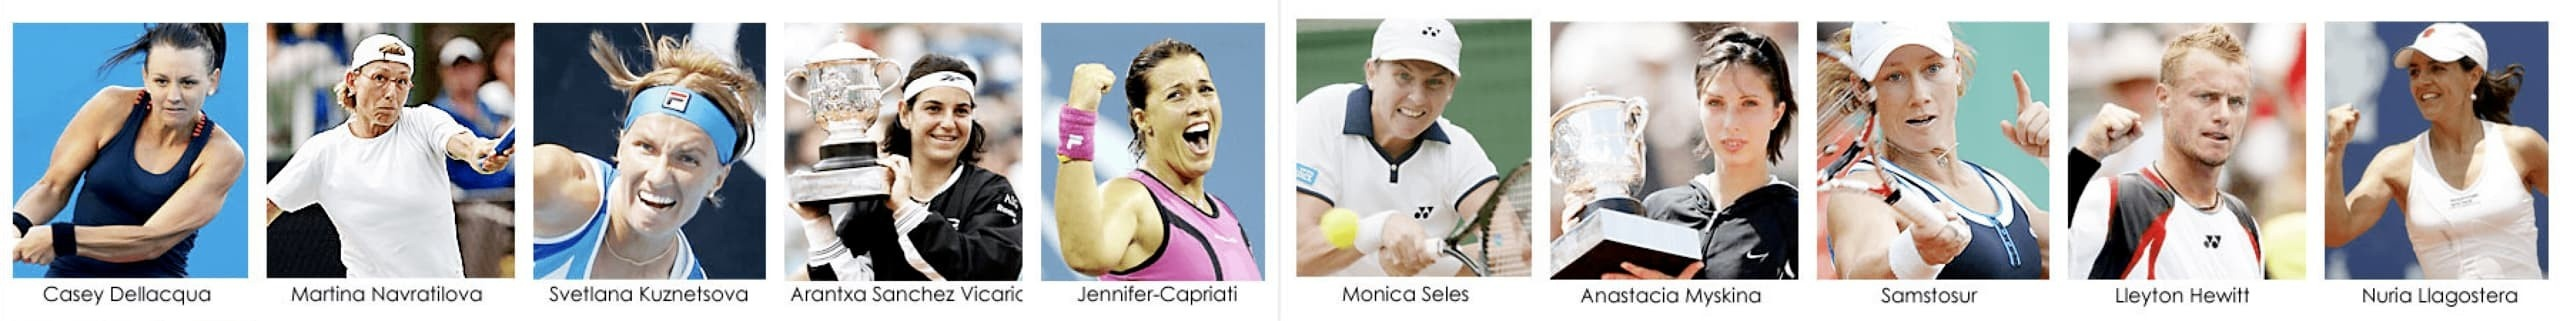 IMAGE OF TENNIS PRO PLAYERS